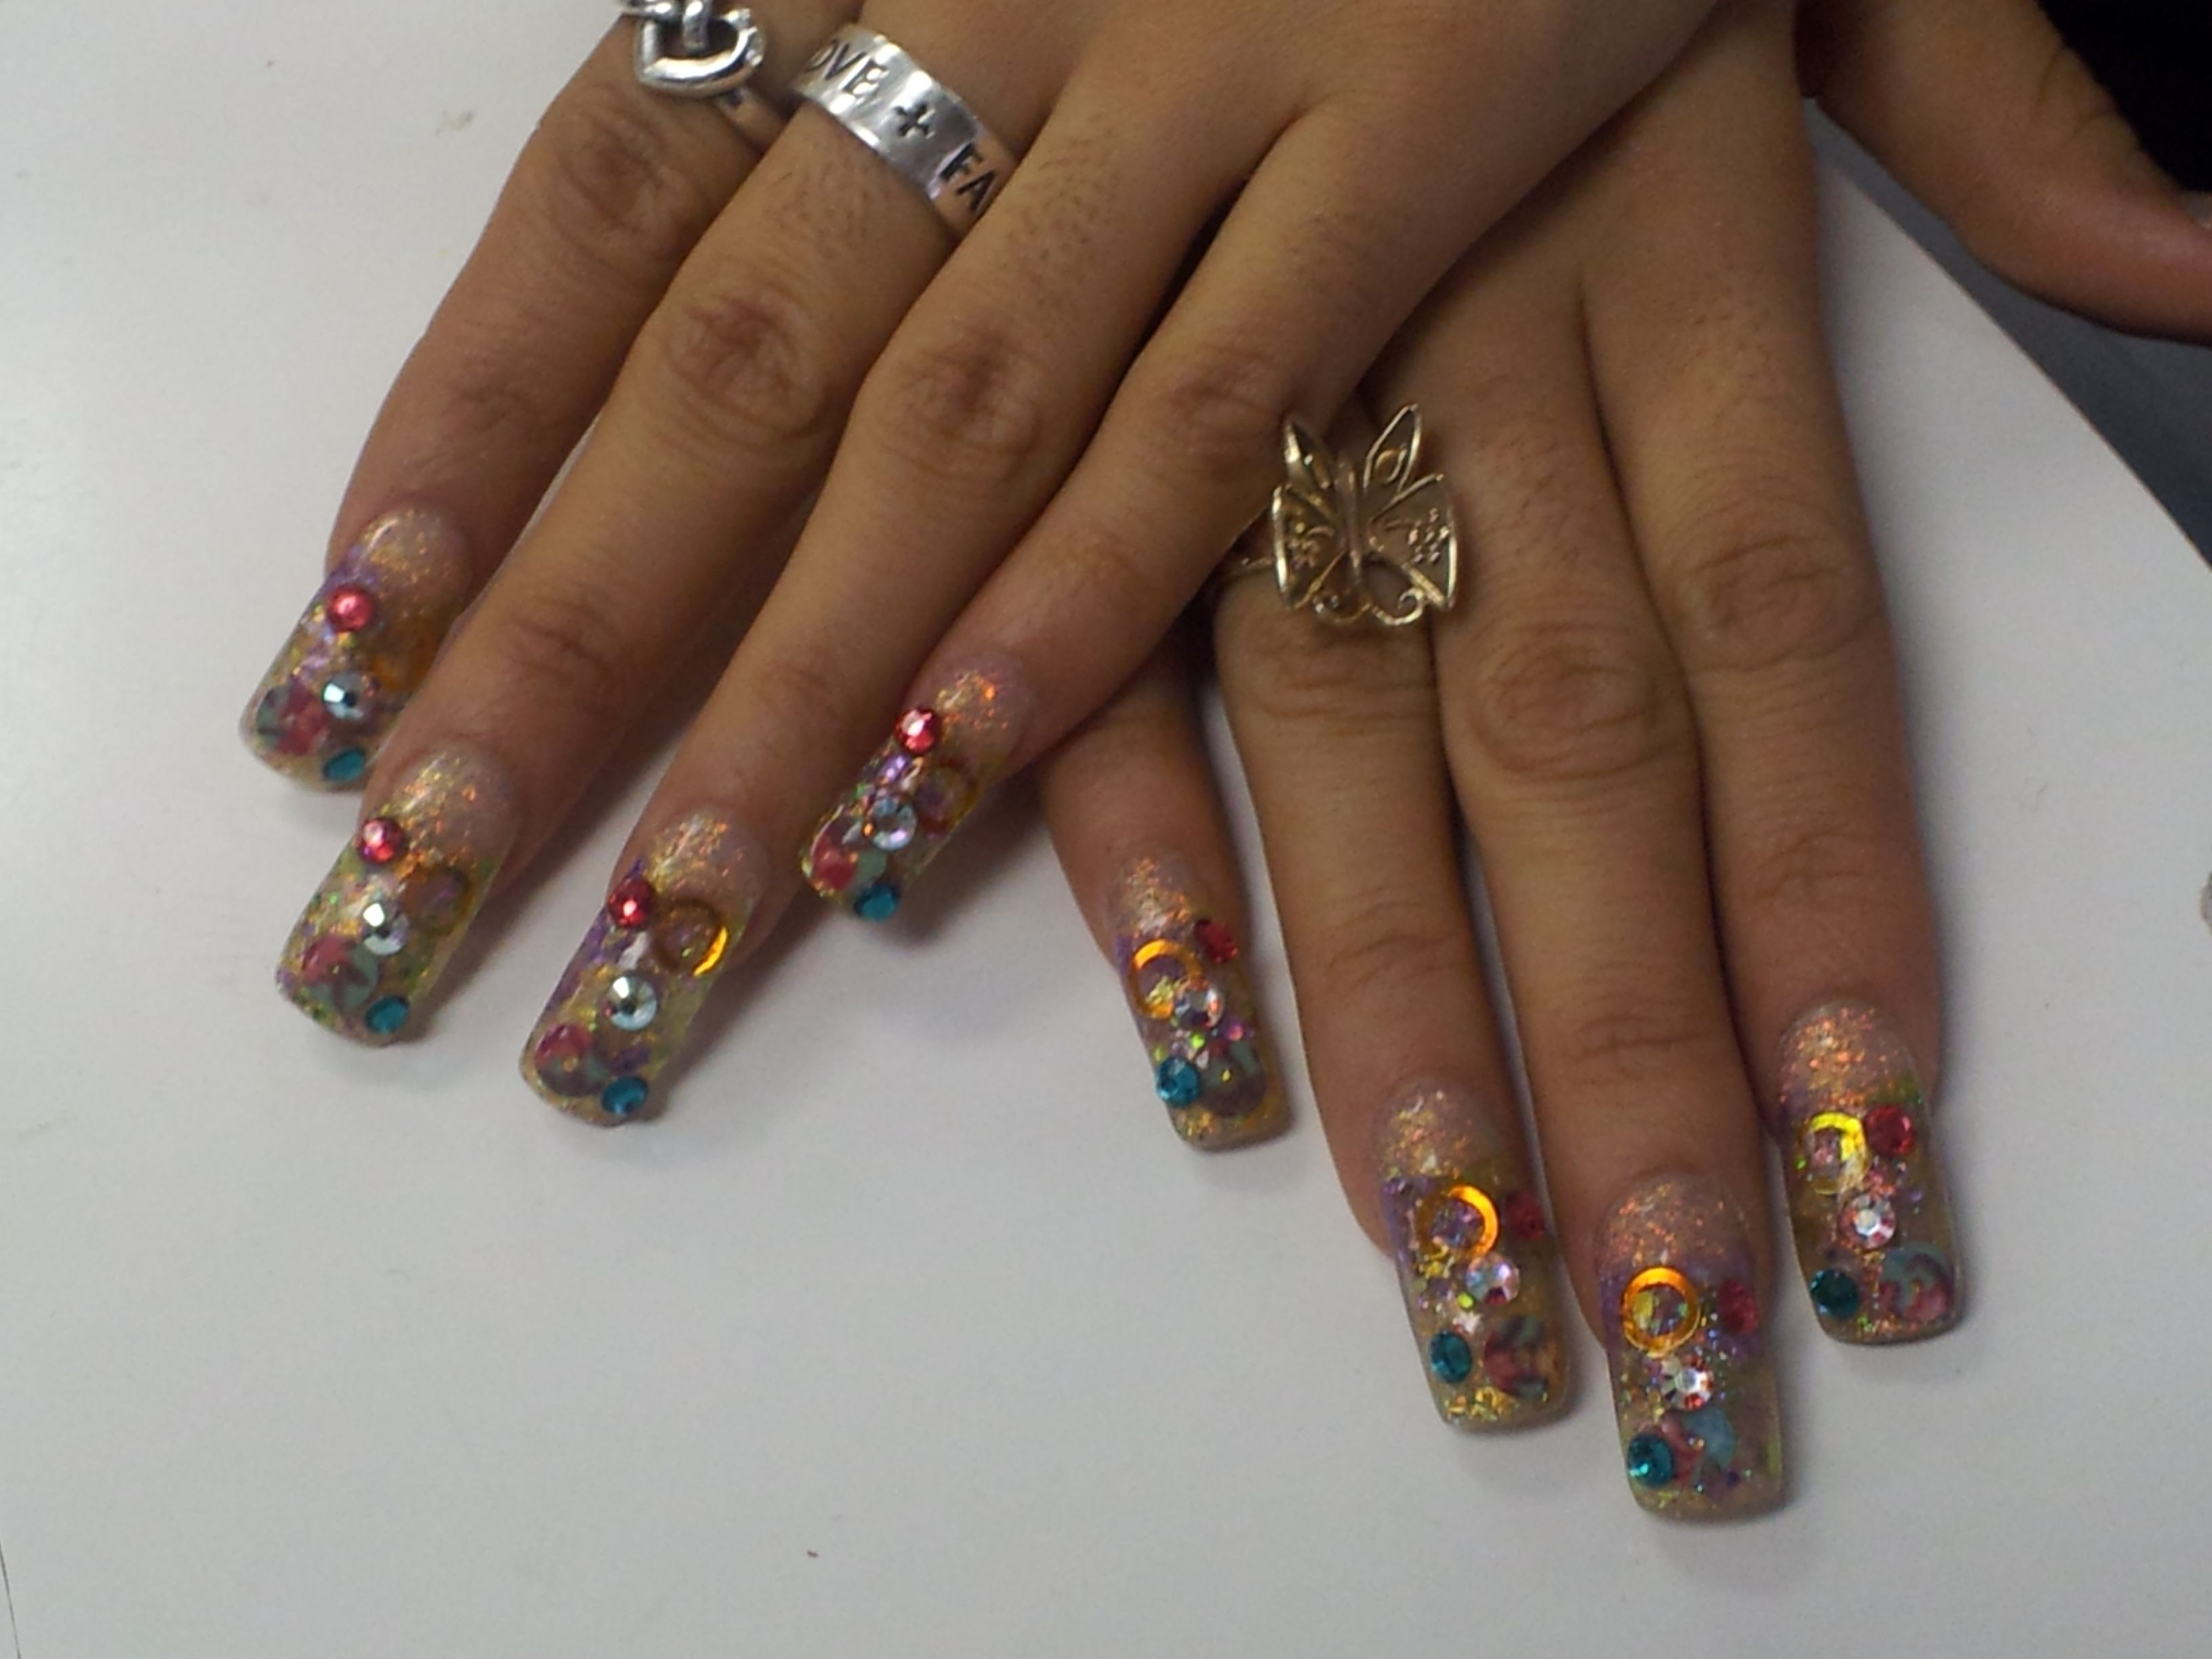 Glamorous NAIL ART done by students at our beauty school